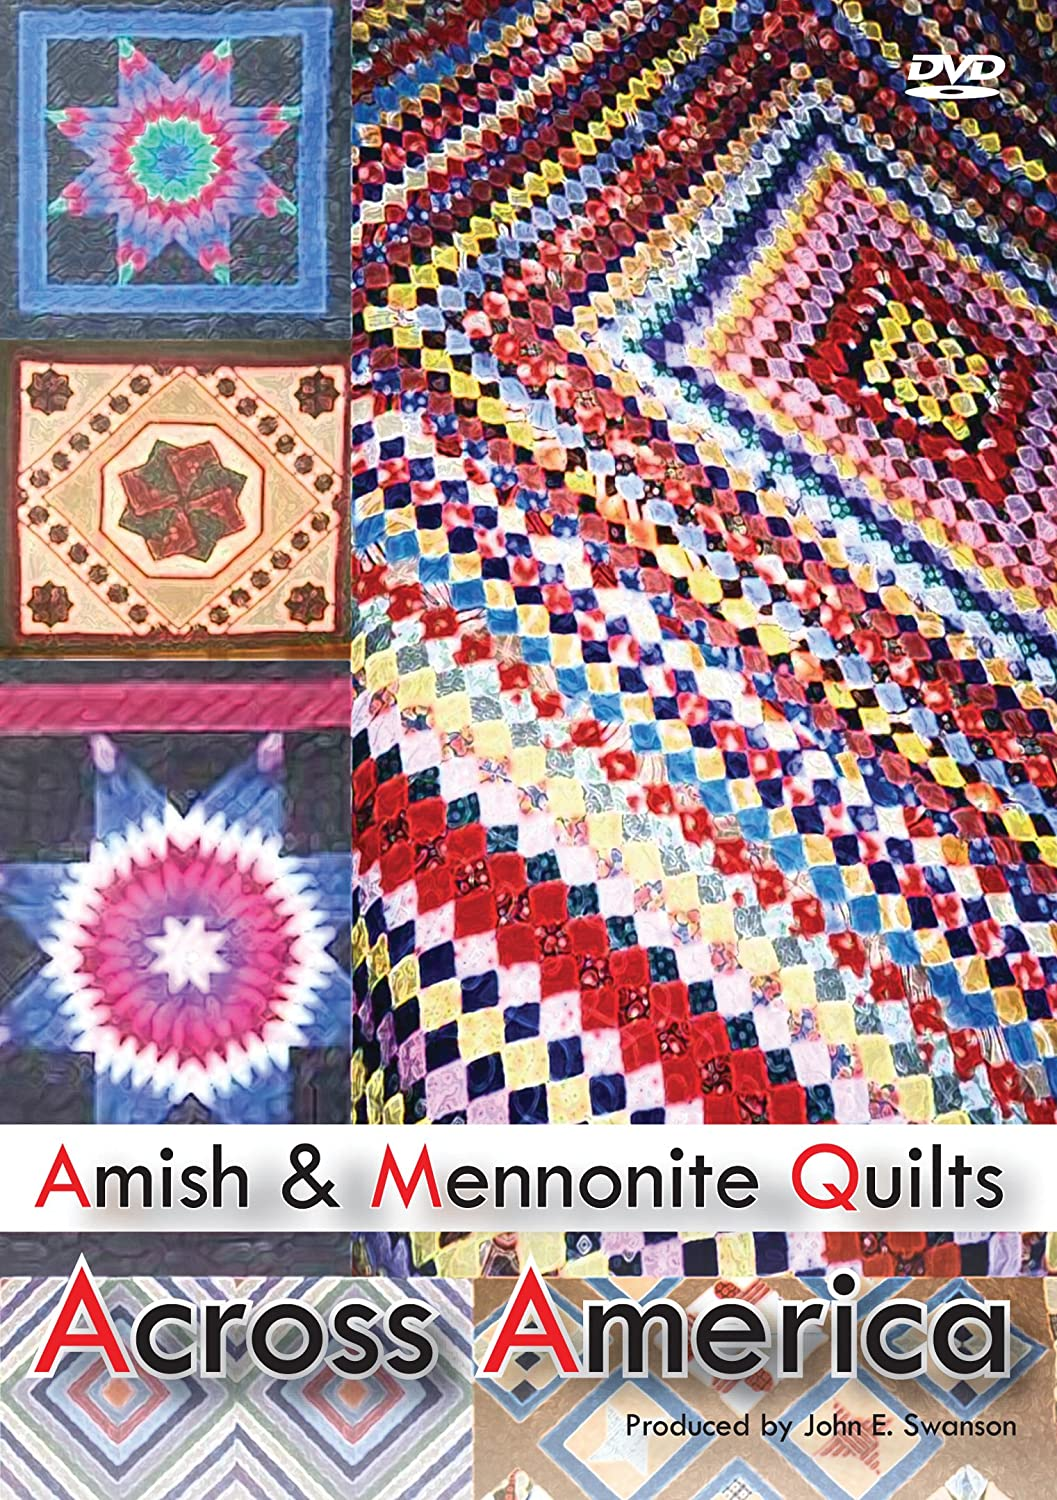 Amazon.com: Amish & Mennonite Quilts Across America: John Swanson ... : mennonite quilt - Adamdwight.com